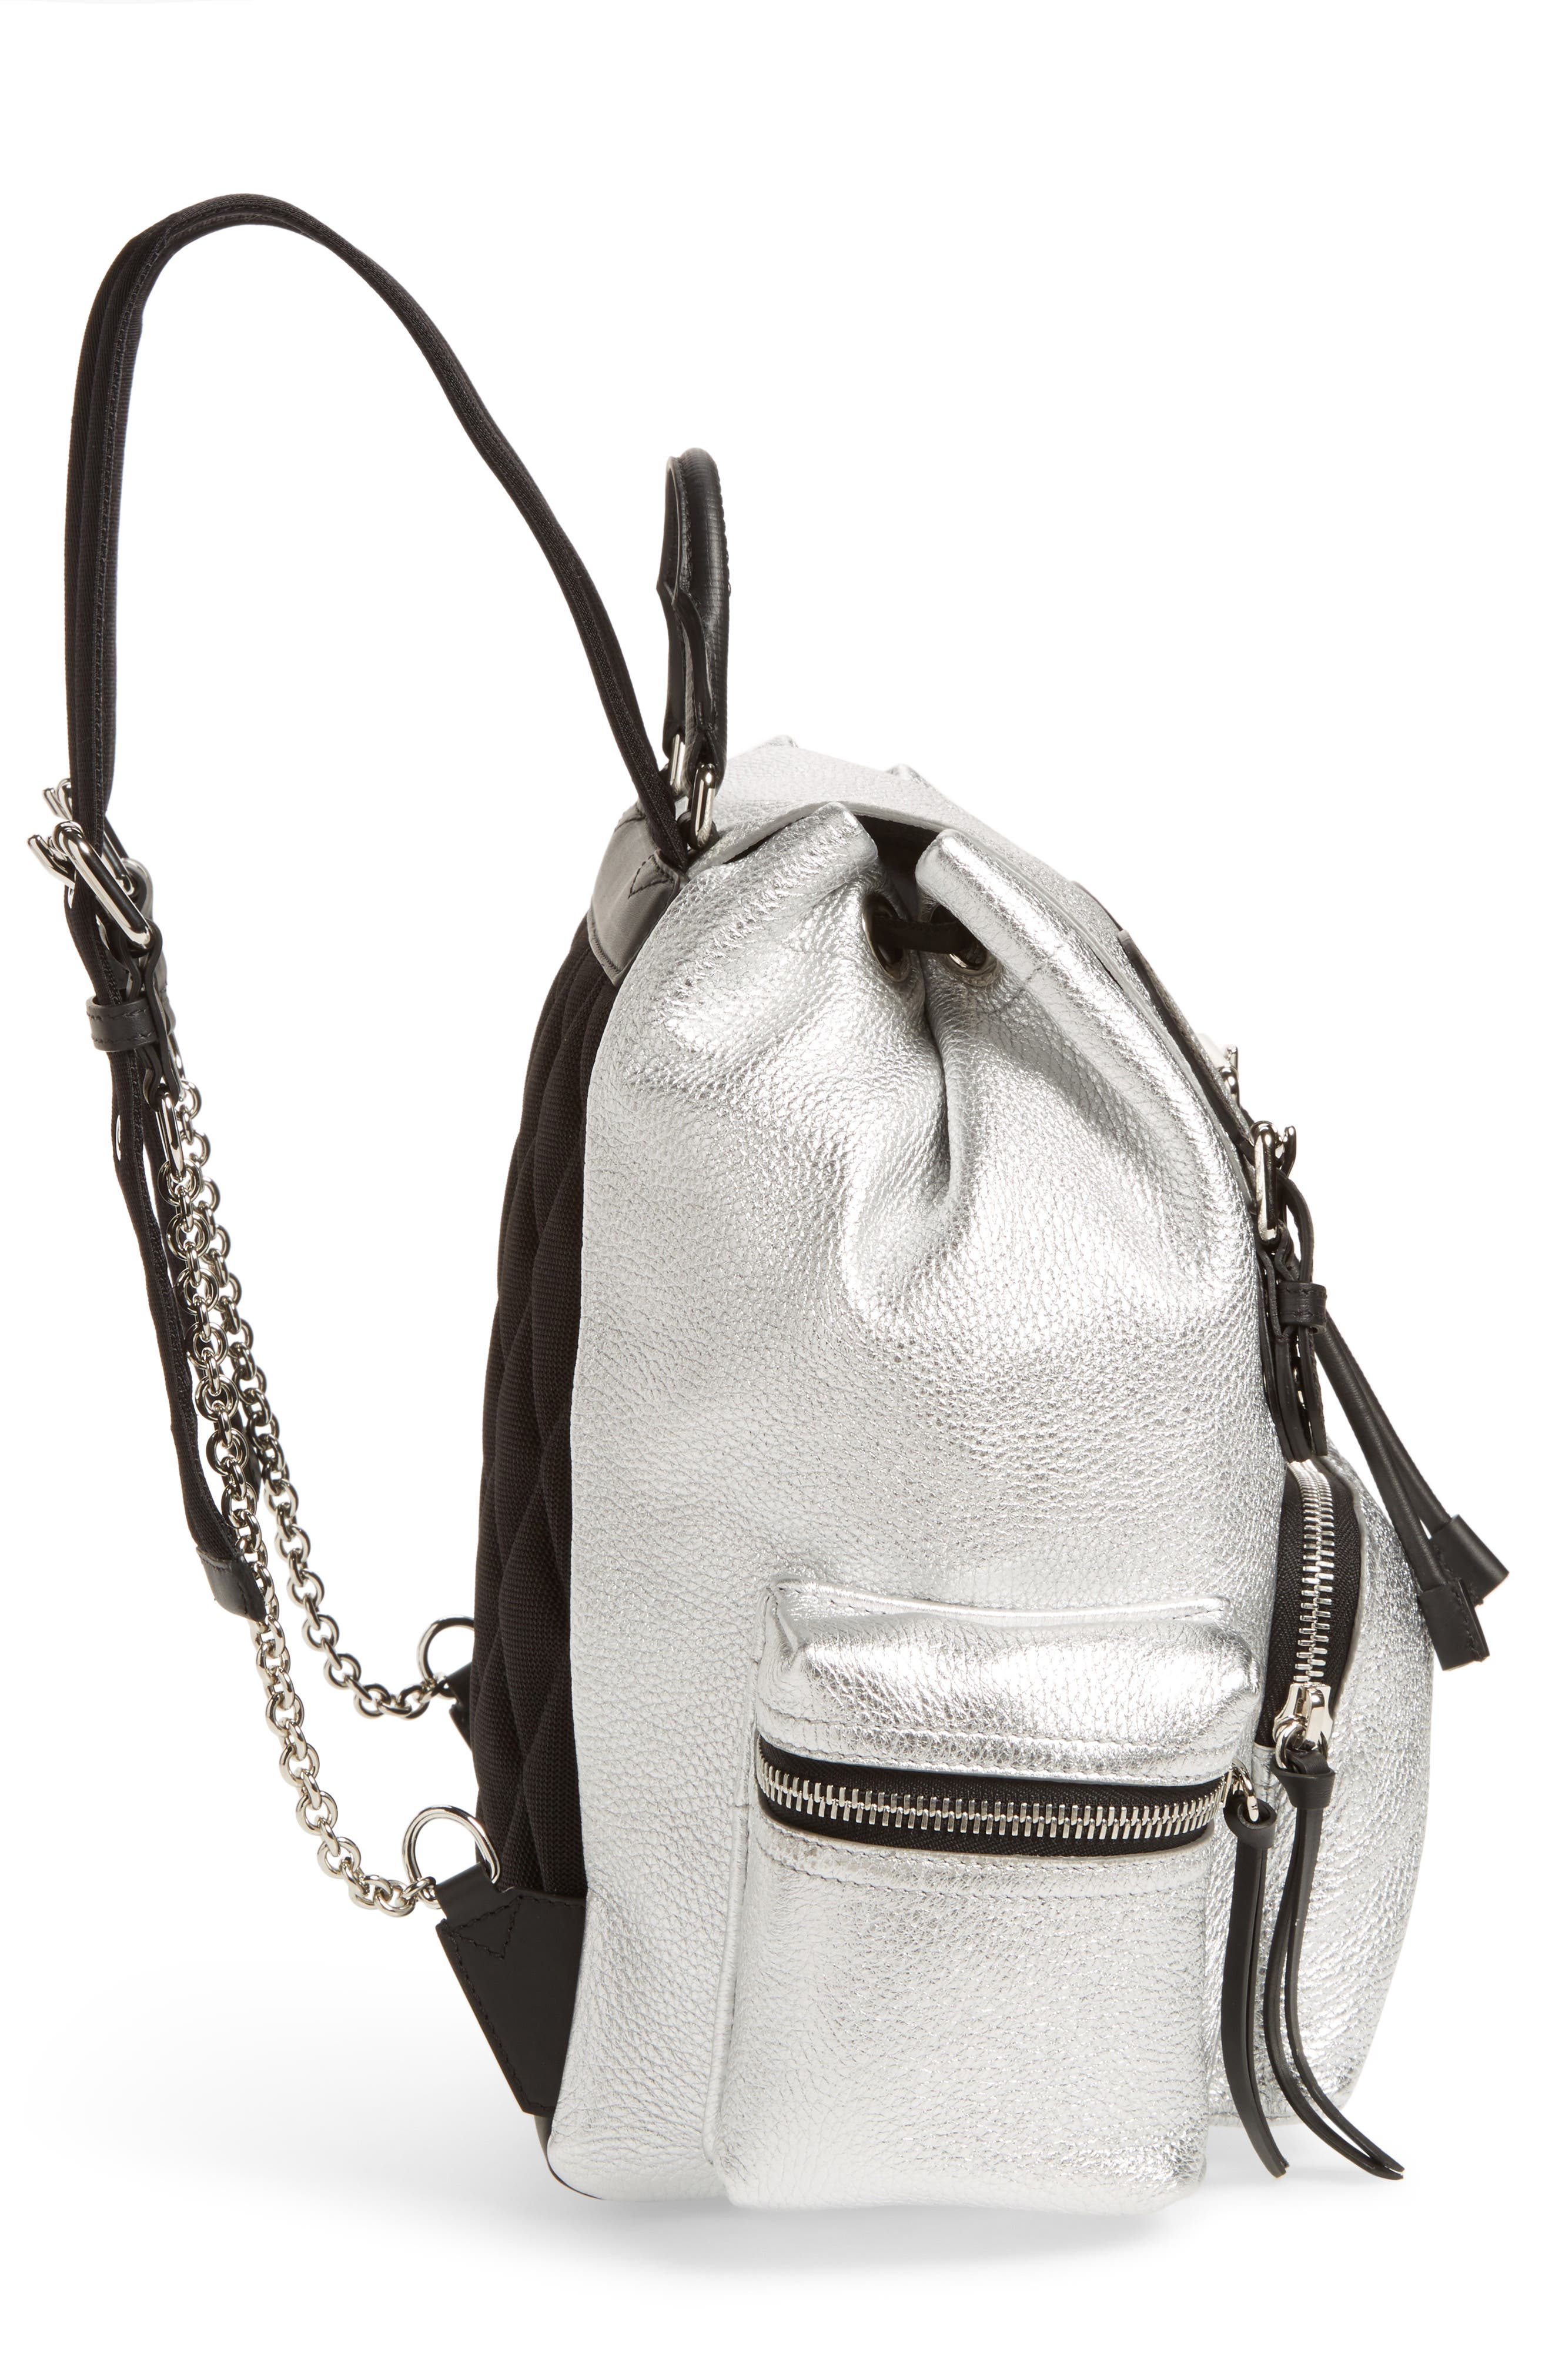 Medium Rucksack Metallic Leather Backpack,                             Alternate thumbnail 5, color,                             040